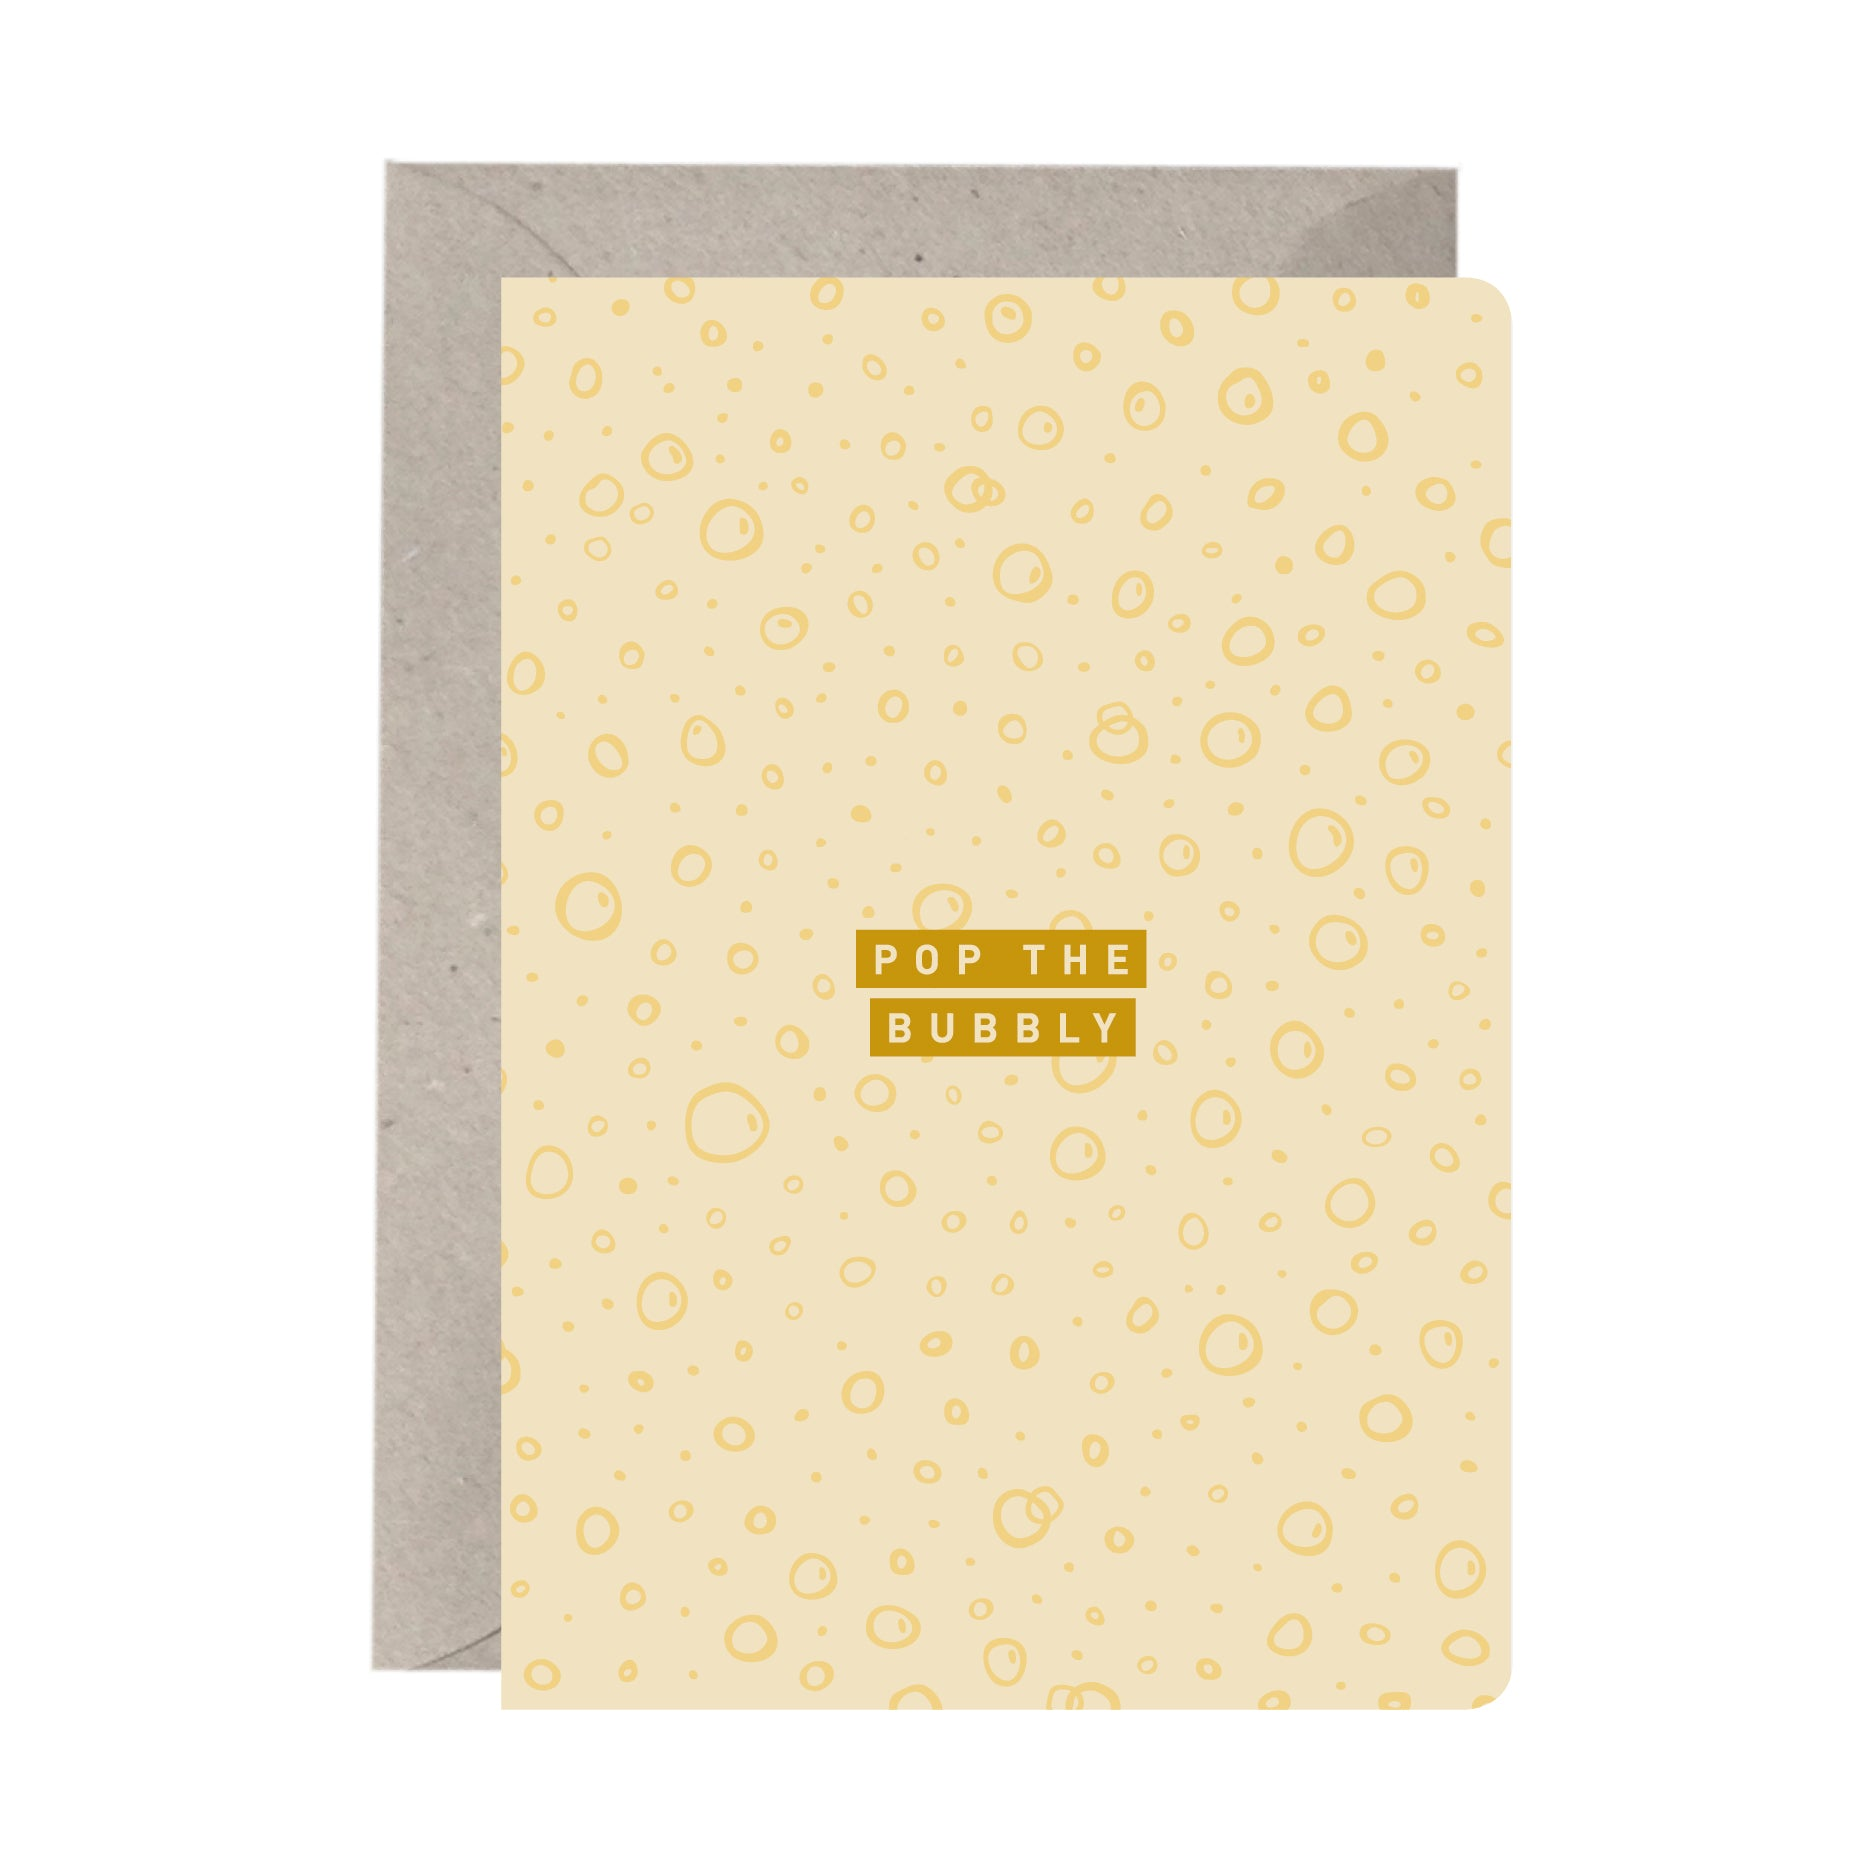 'Pop The Bubbly' Congratulations Card